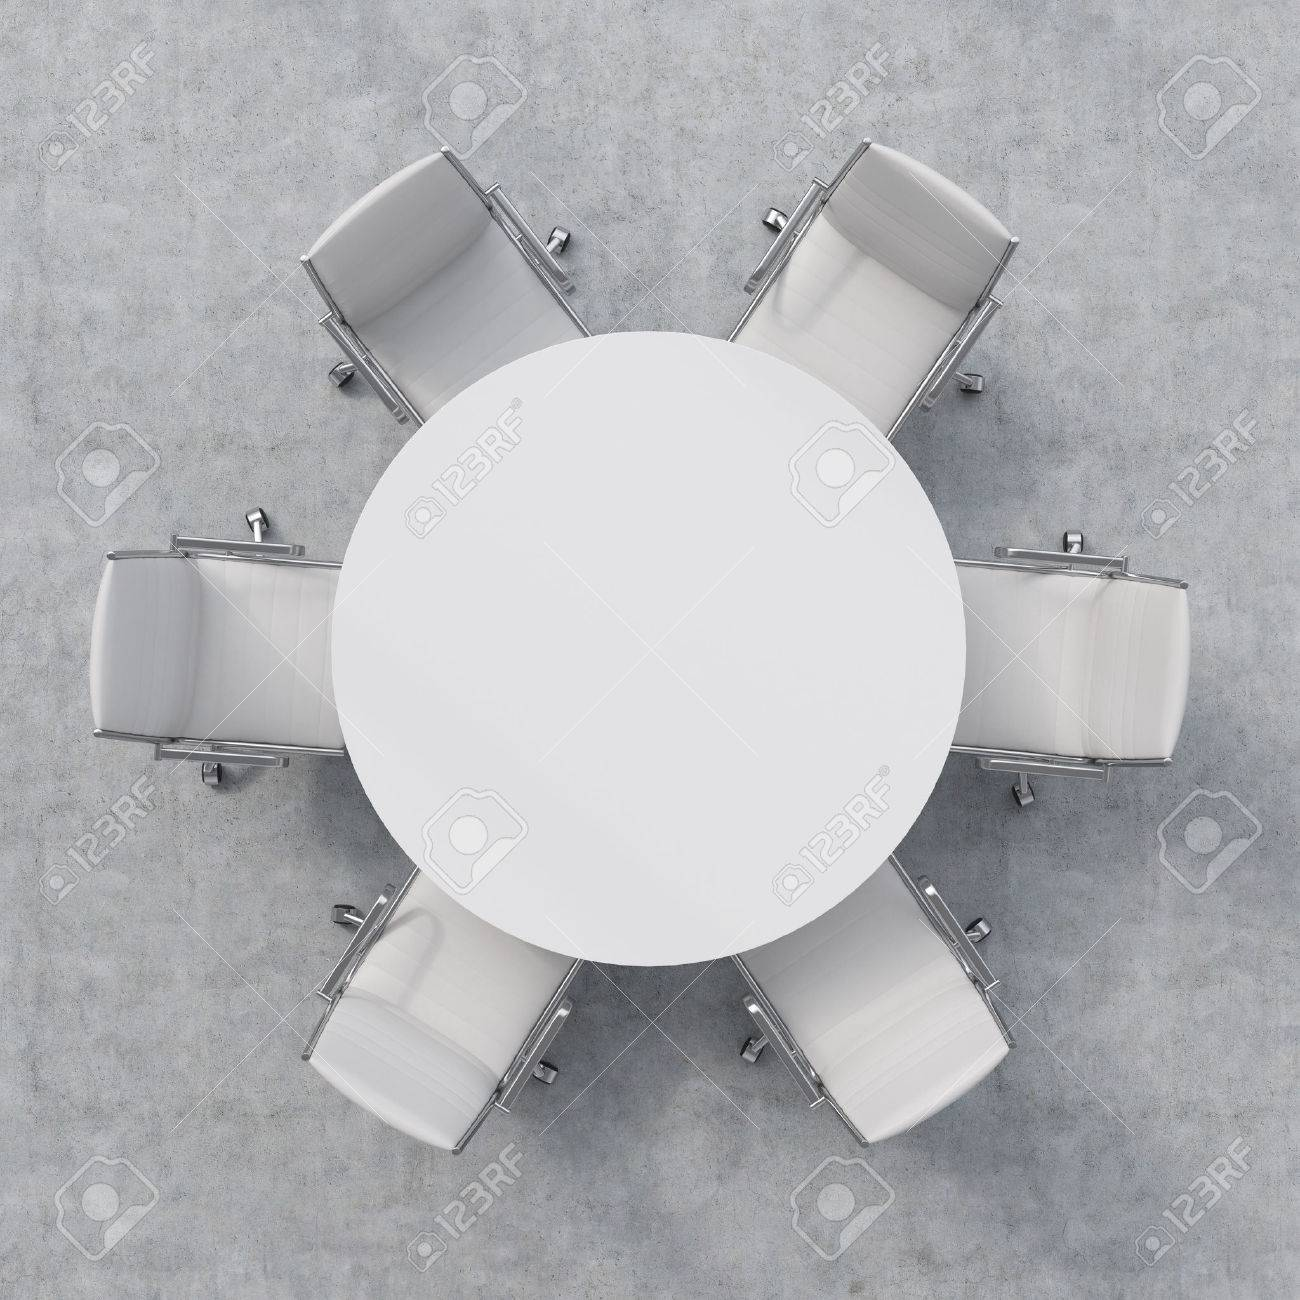 Top View Of A Conference Room. A White Round Table And Six Chairs ... for round table with chairs top view  157uhy